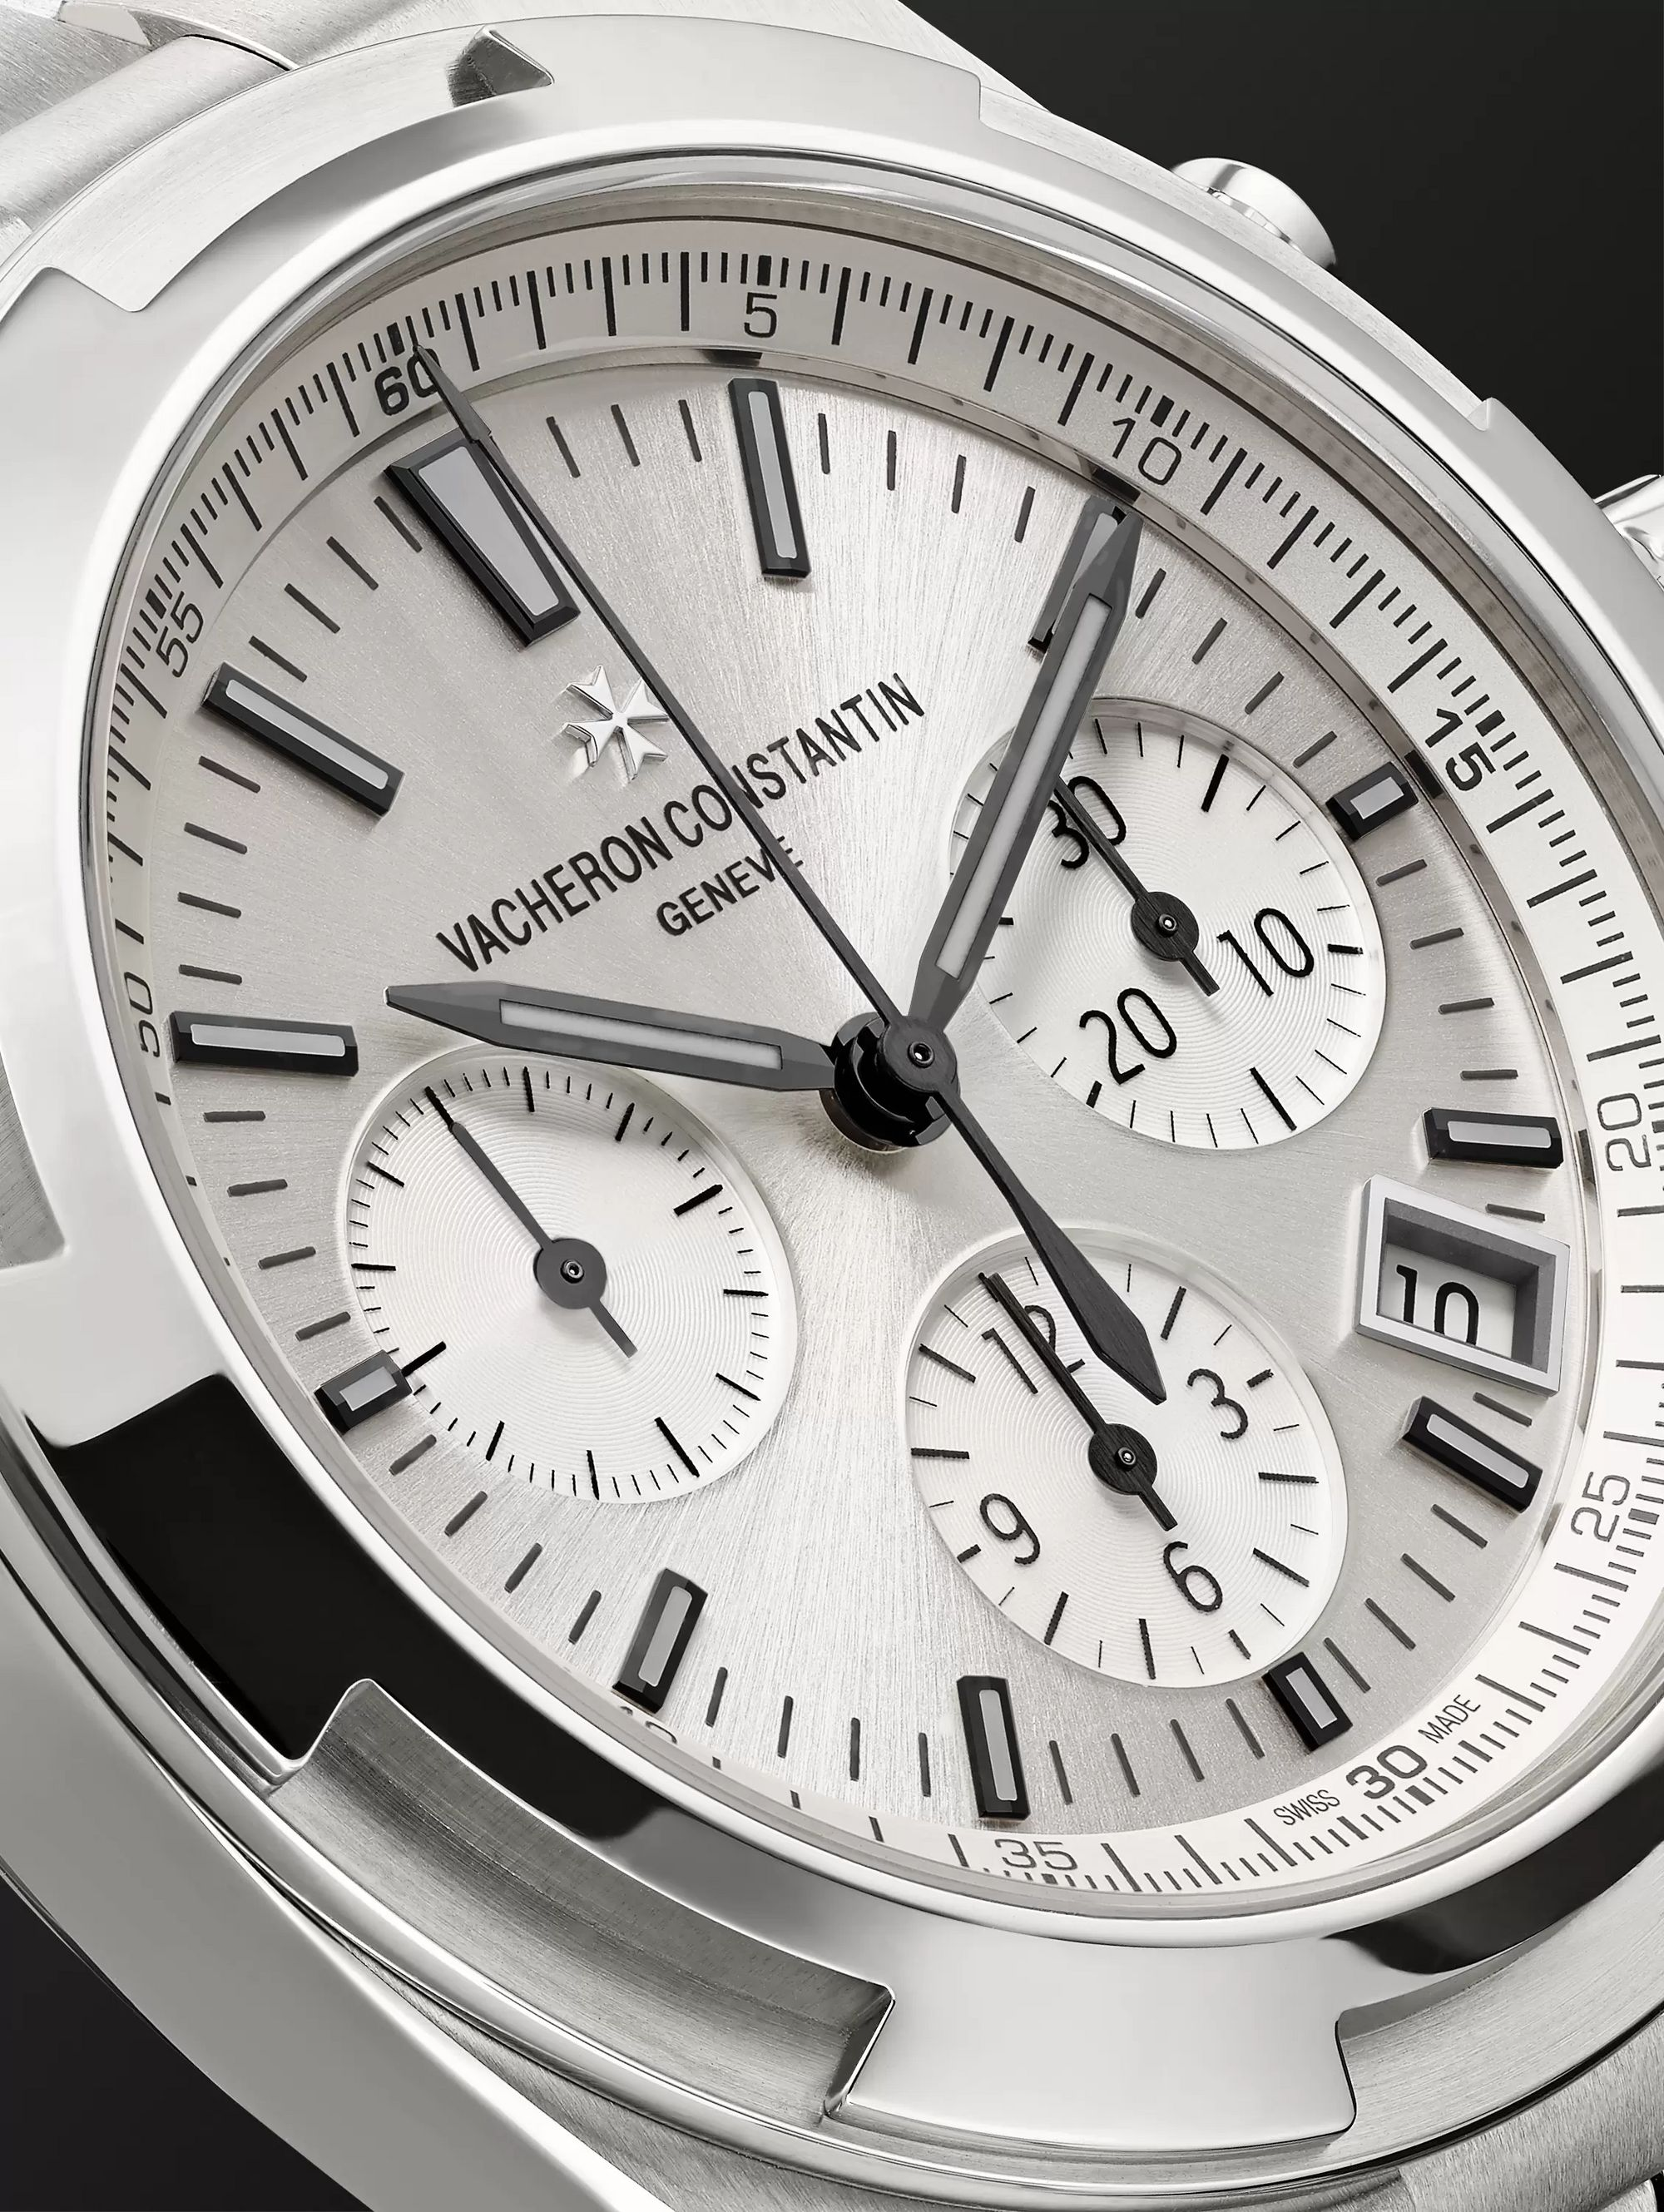 Vacheron Constantin Overseas Automatic Chronograph 42.5mm Stainless Steel Watch, Ref. No. 5500V/110A-B148